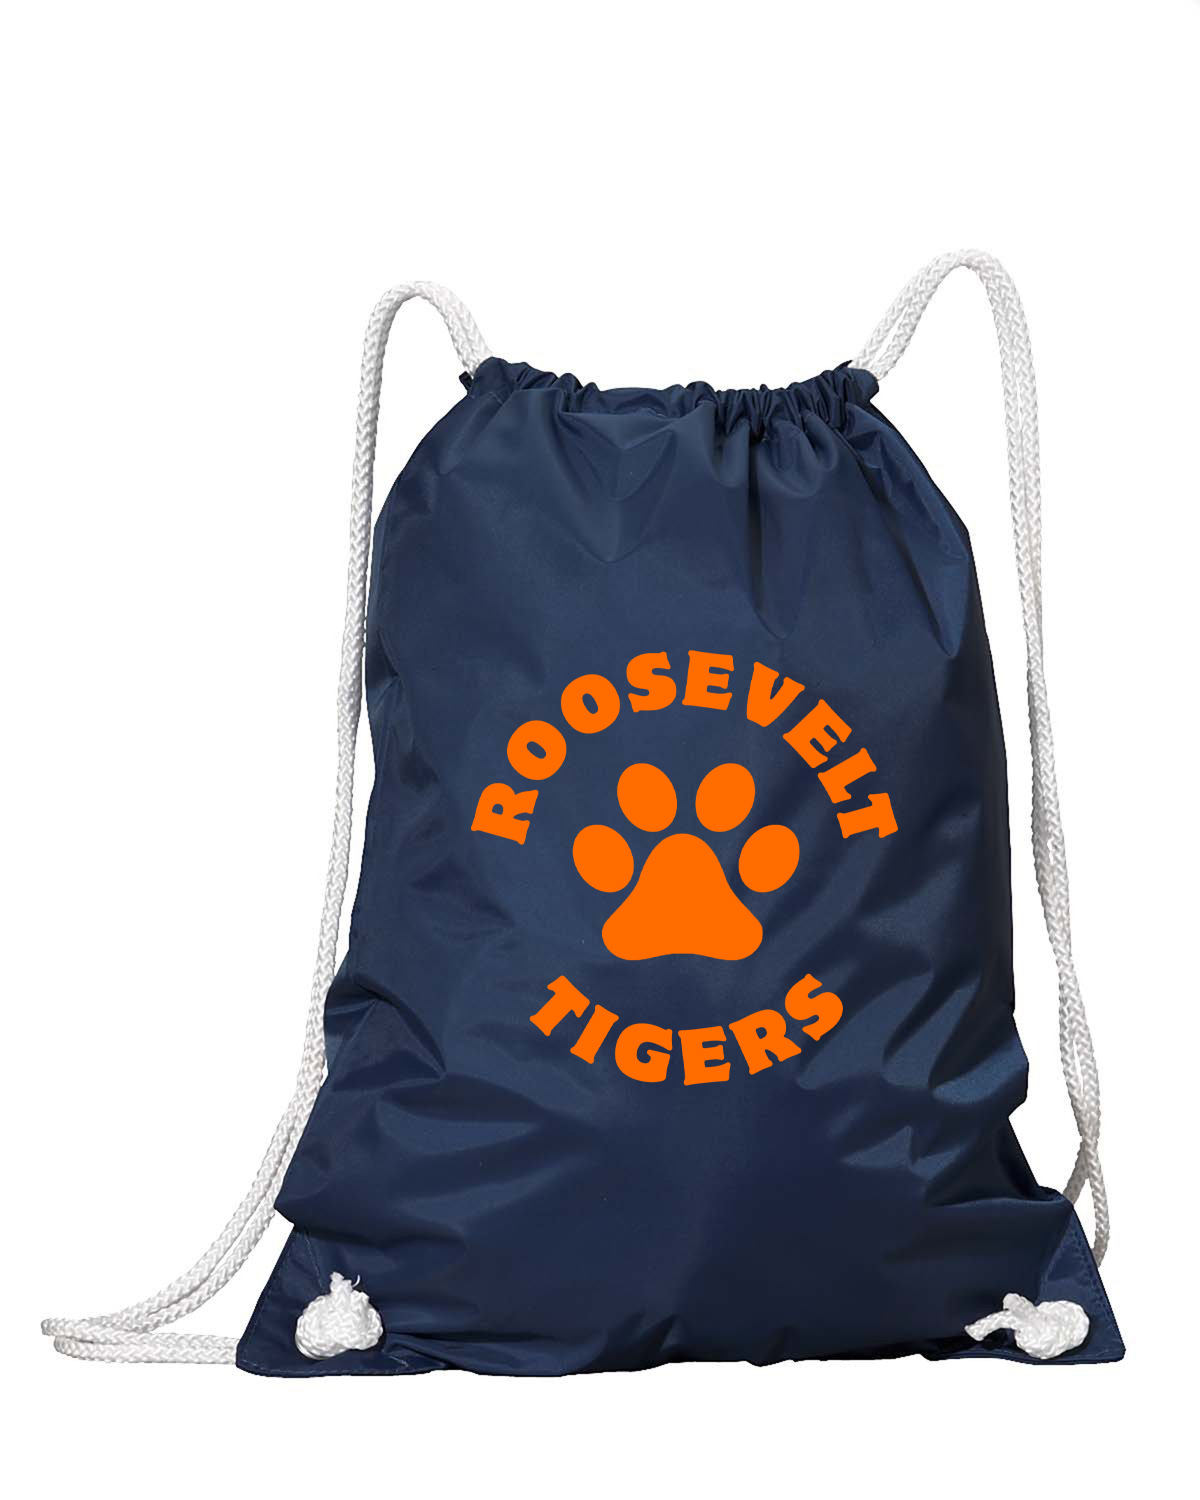 custom design of Liberty Bags 8887-Nylon Drawstring Backpack with White Drawcords